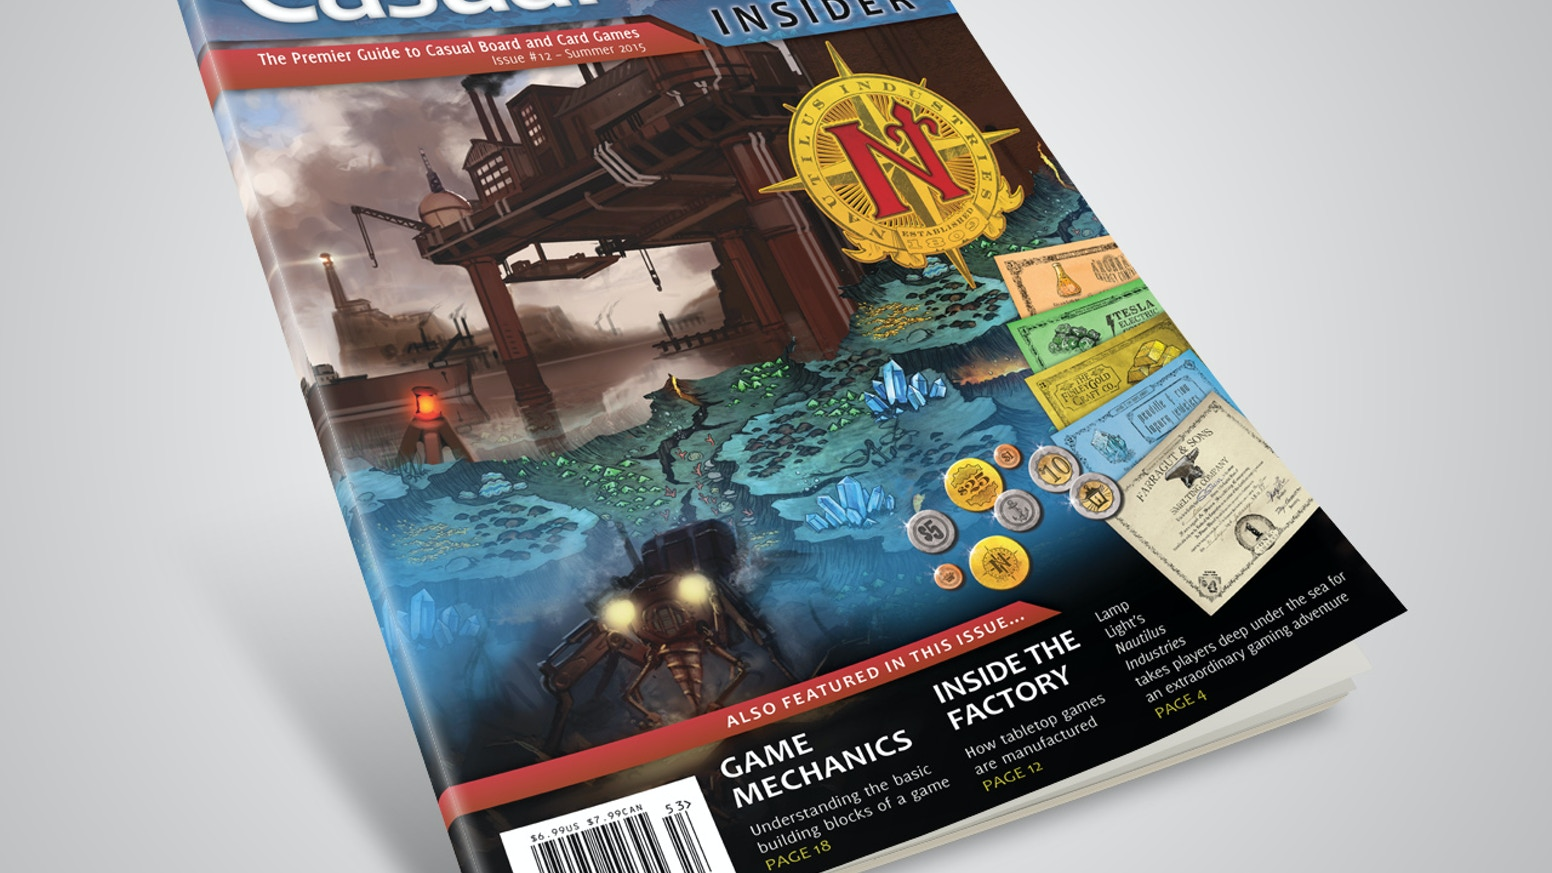 News, reviews, and many interesting articles related to tabletop games - by casual gamers, for casual gamers.